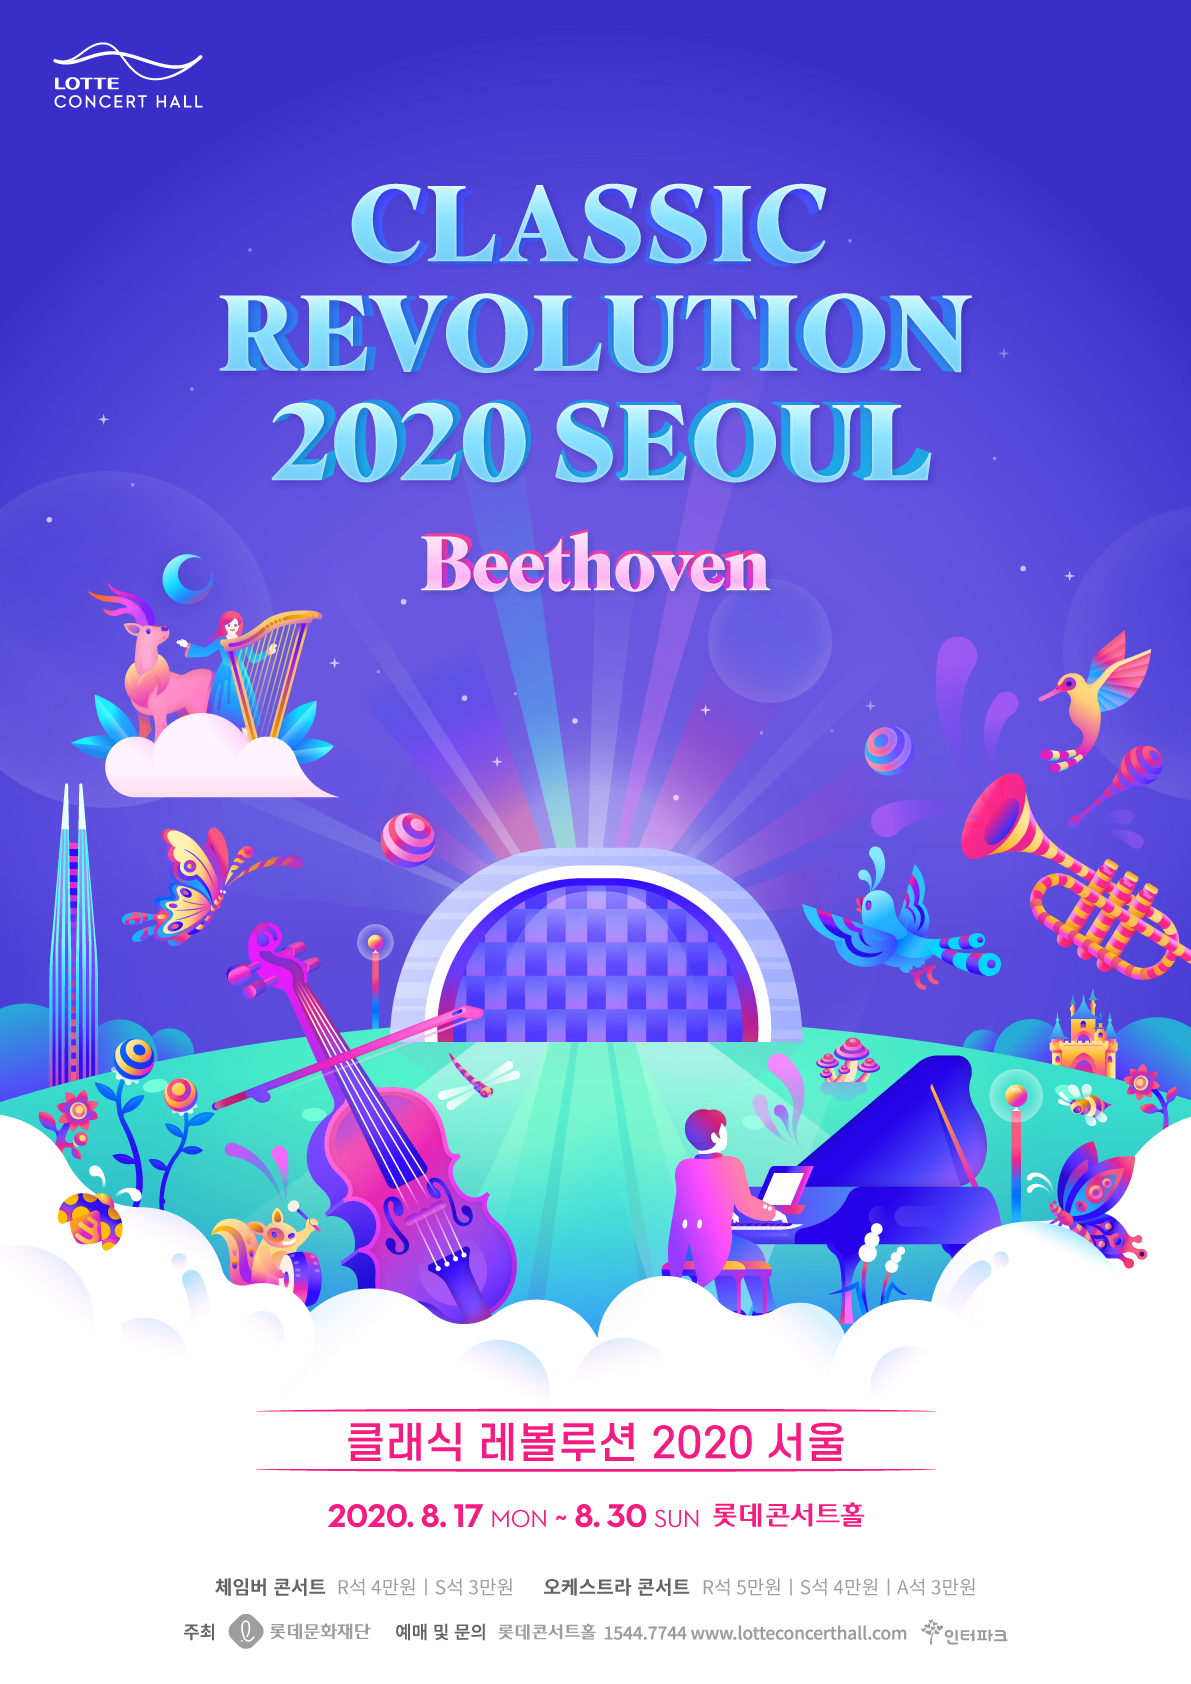 Poster image of Classic Revolution 2020 Seoul Beethoven (Lotte Foundation for Arts)